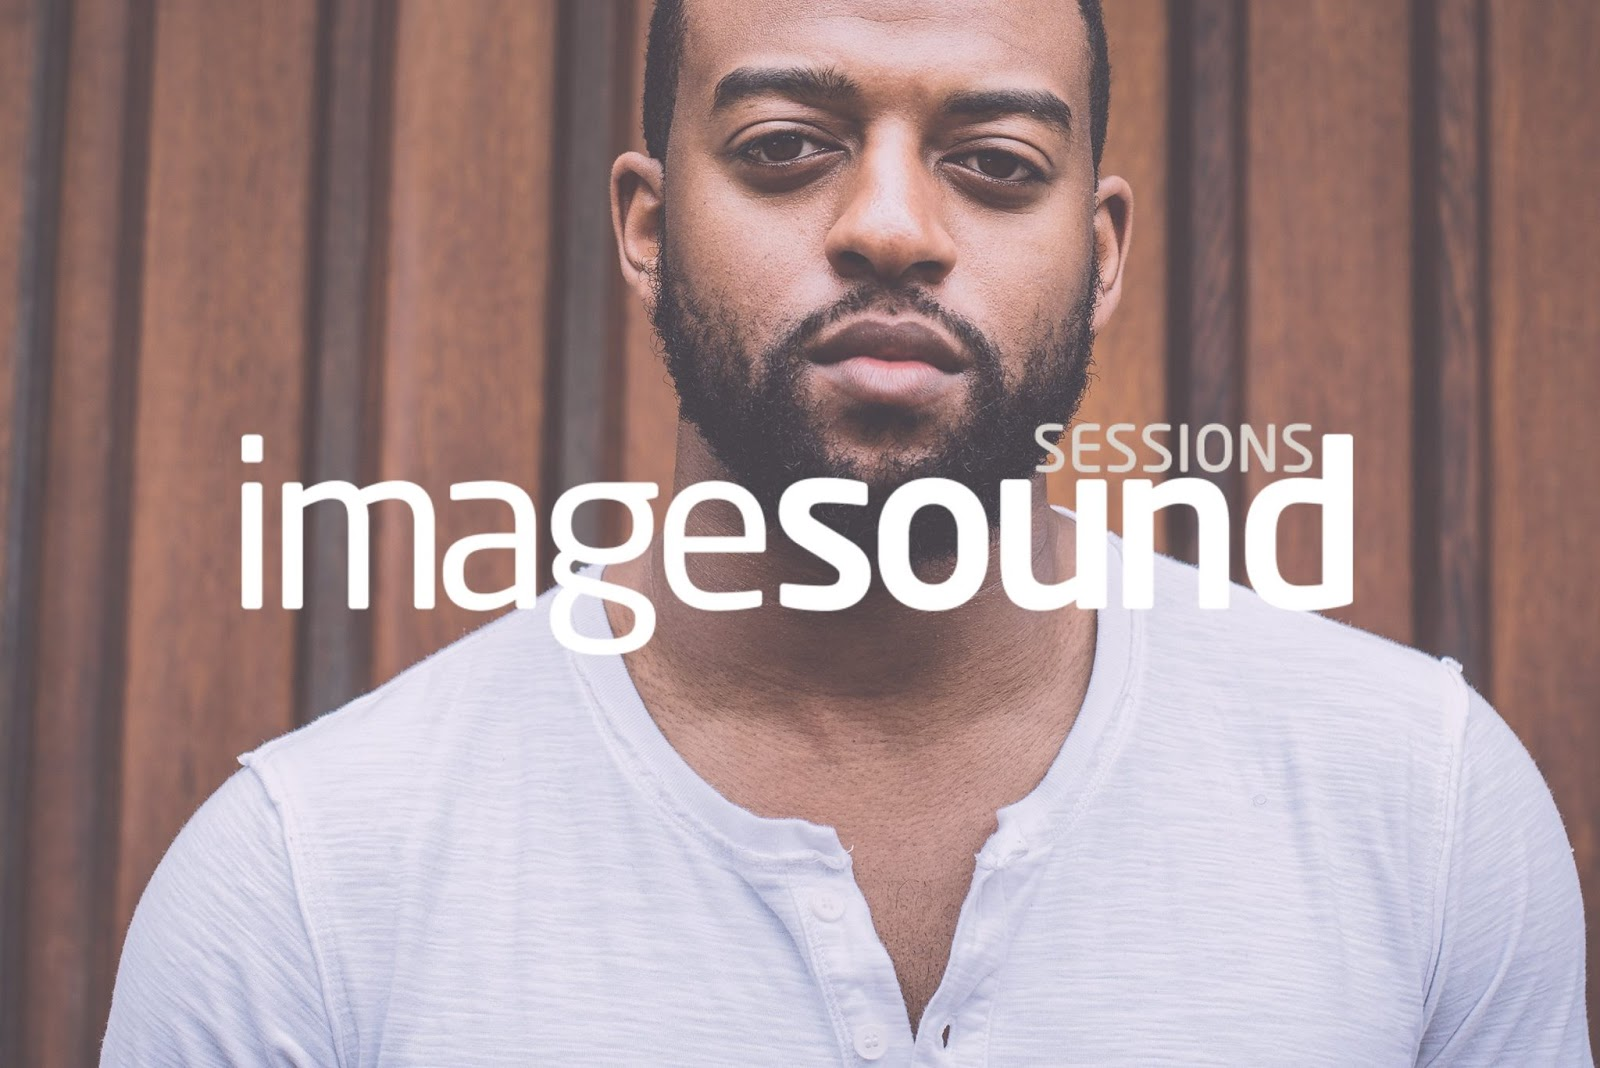 Imagesound Sessions - OWS